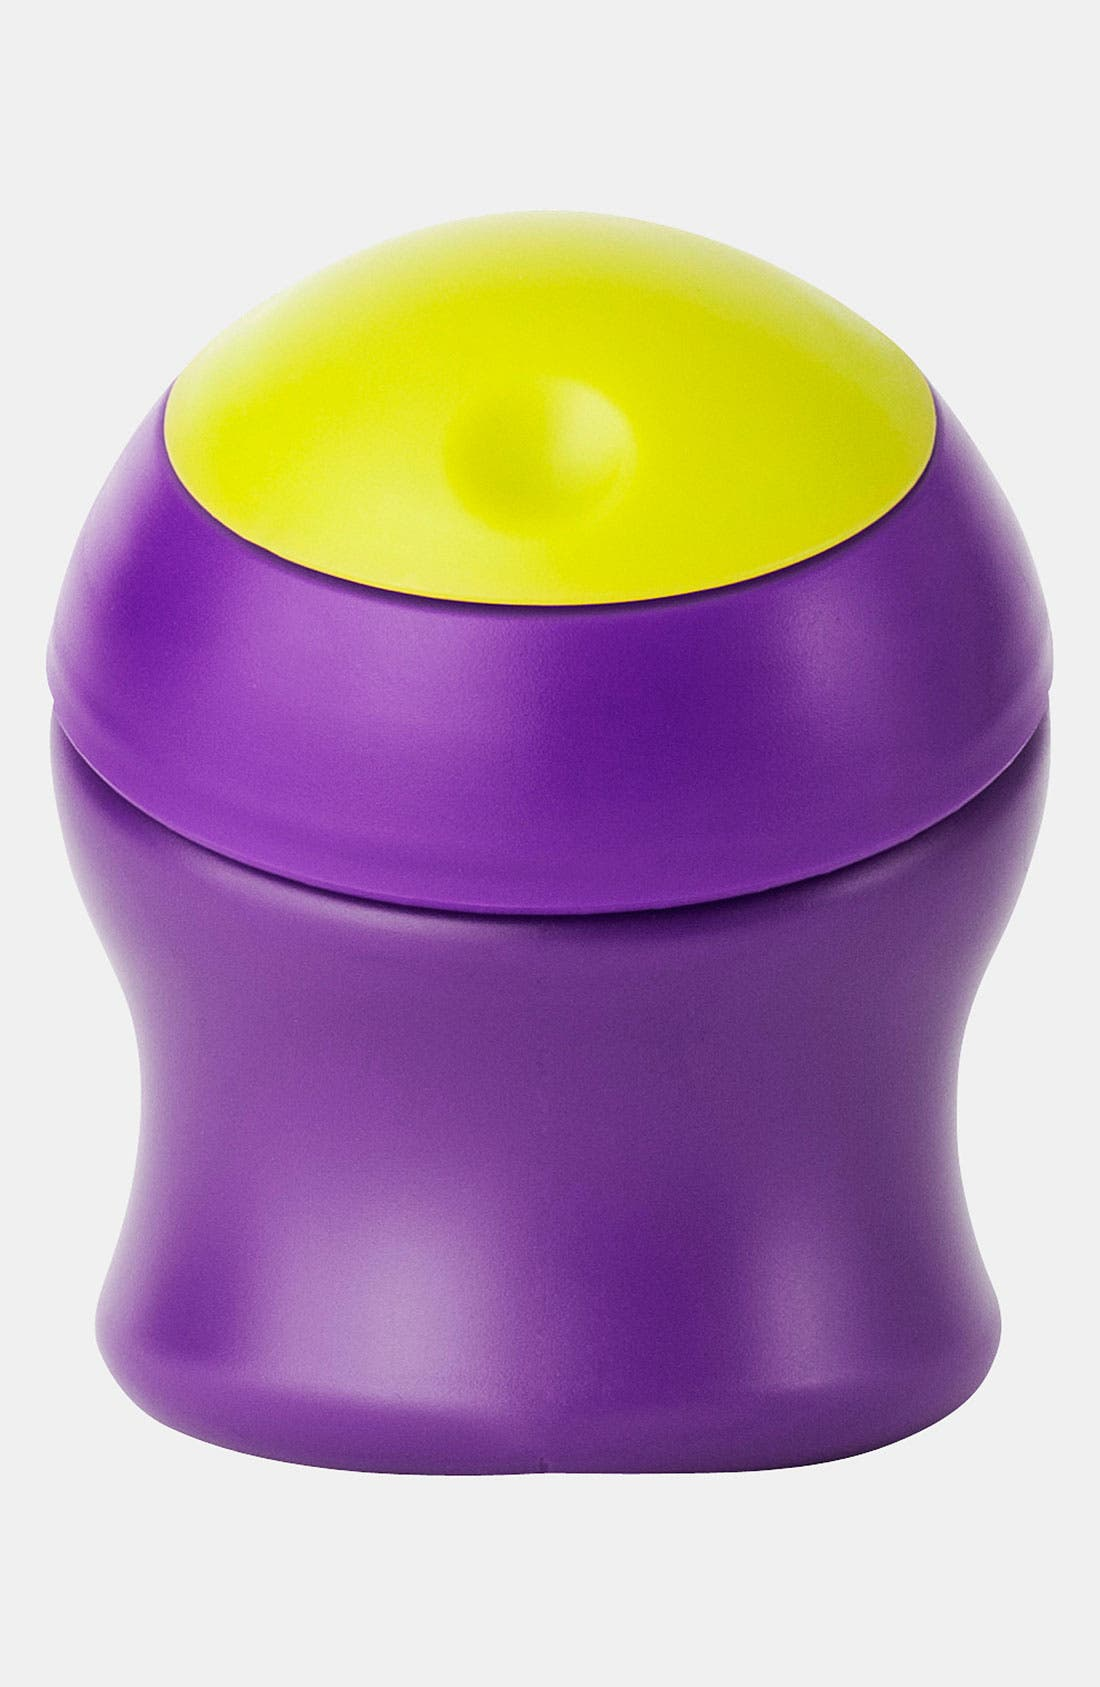 Alternate Image 1 Selected - Boon 'Munch' Snack Container